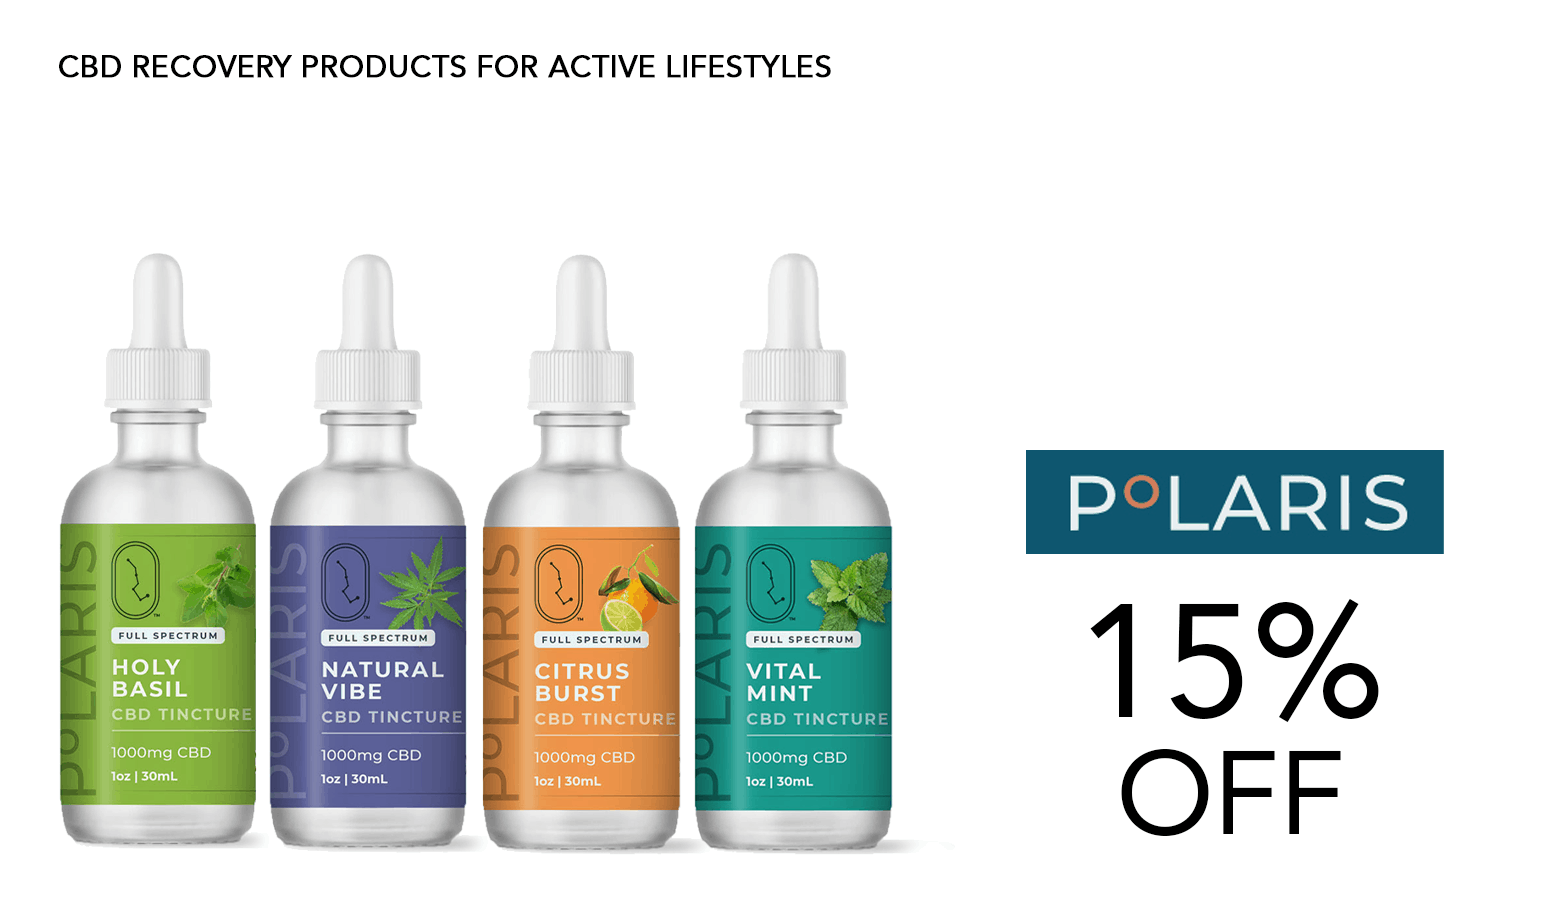 Polariscbd Coupon Code Offer Website